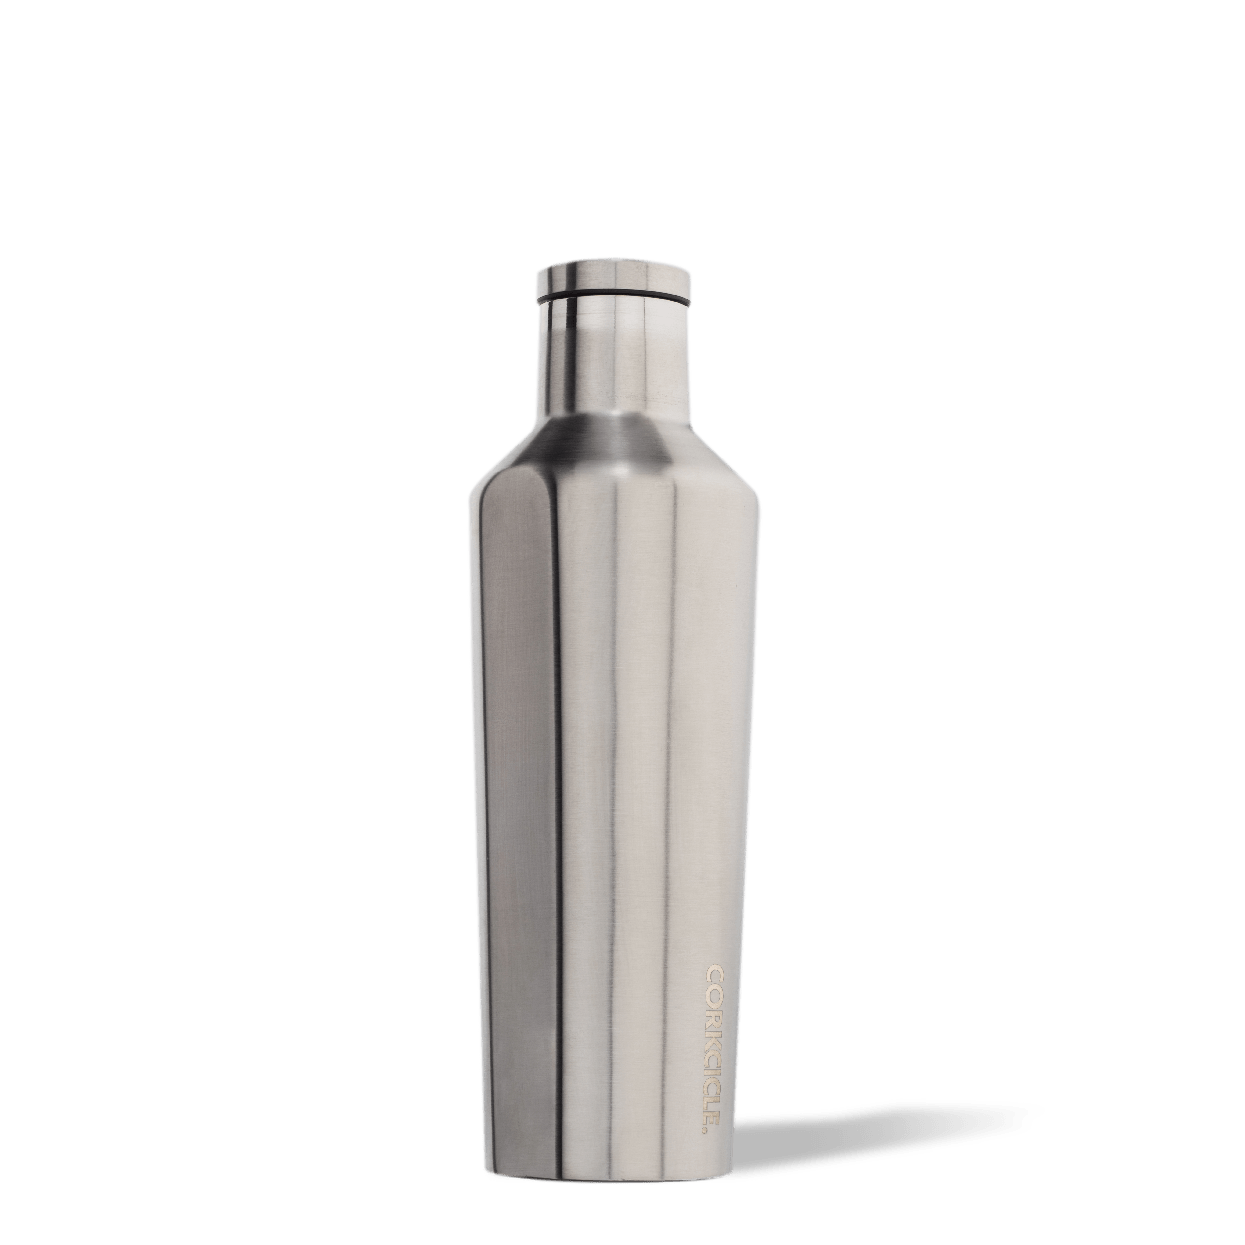 Corkcicle Brushed Steel 16oz Canteen Side View.